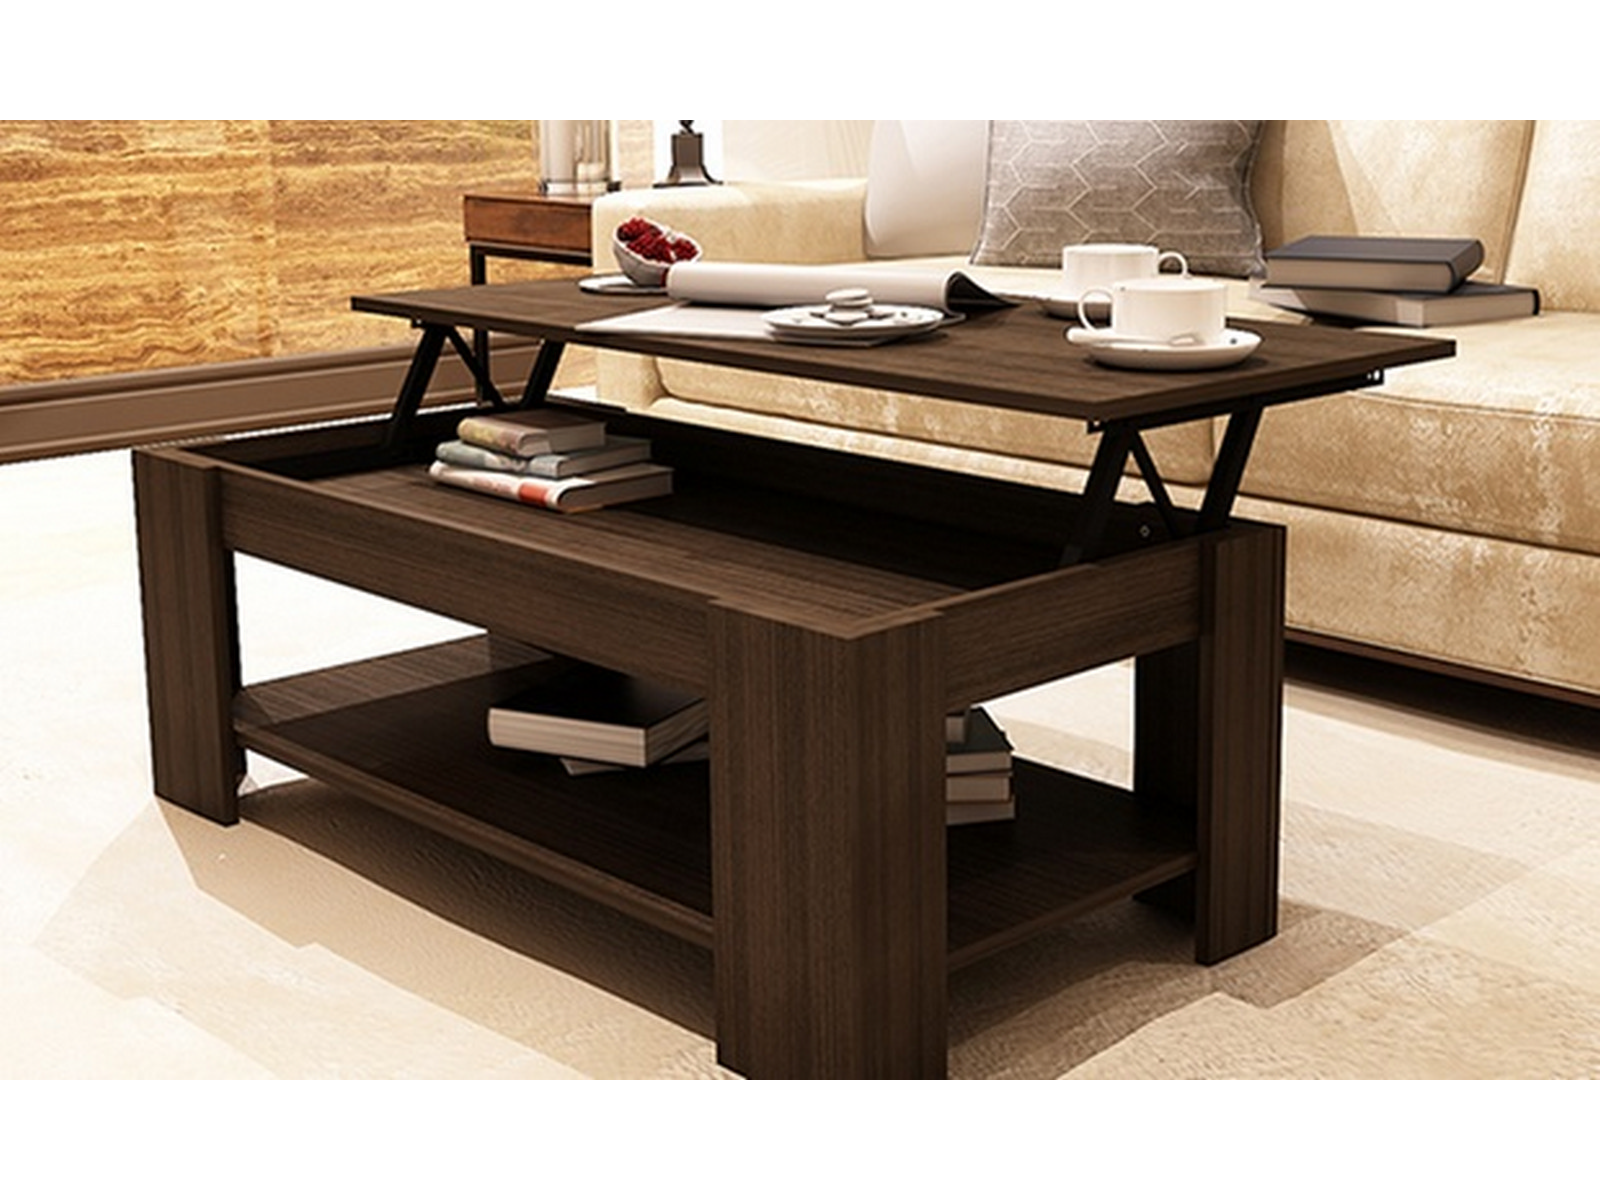 New Caspian Espresso Lift Up Top Coffee Table With Storage Shelf